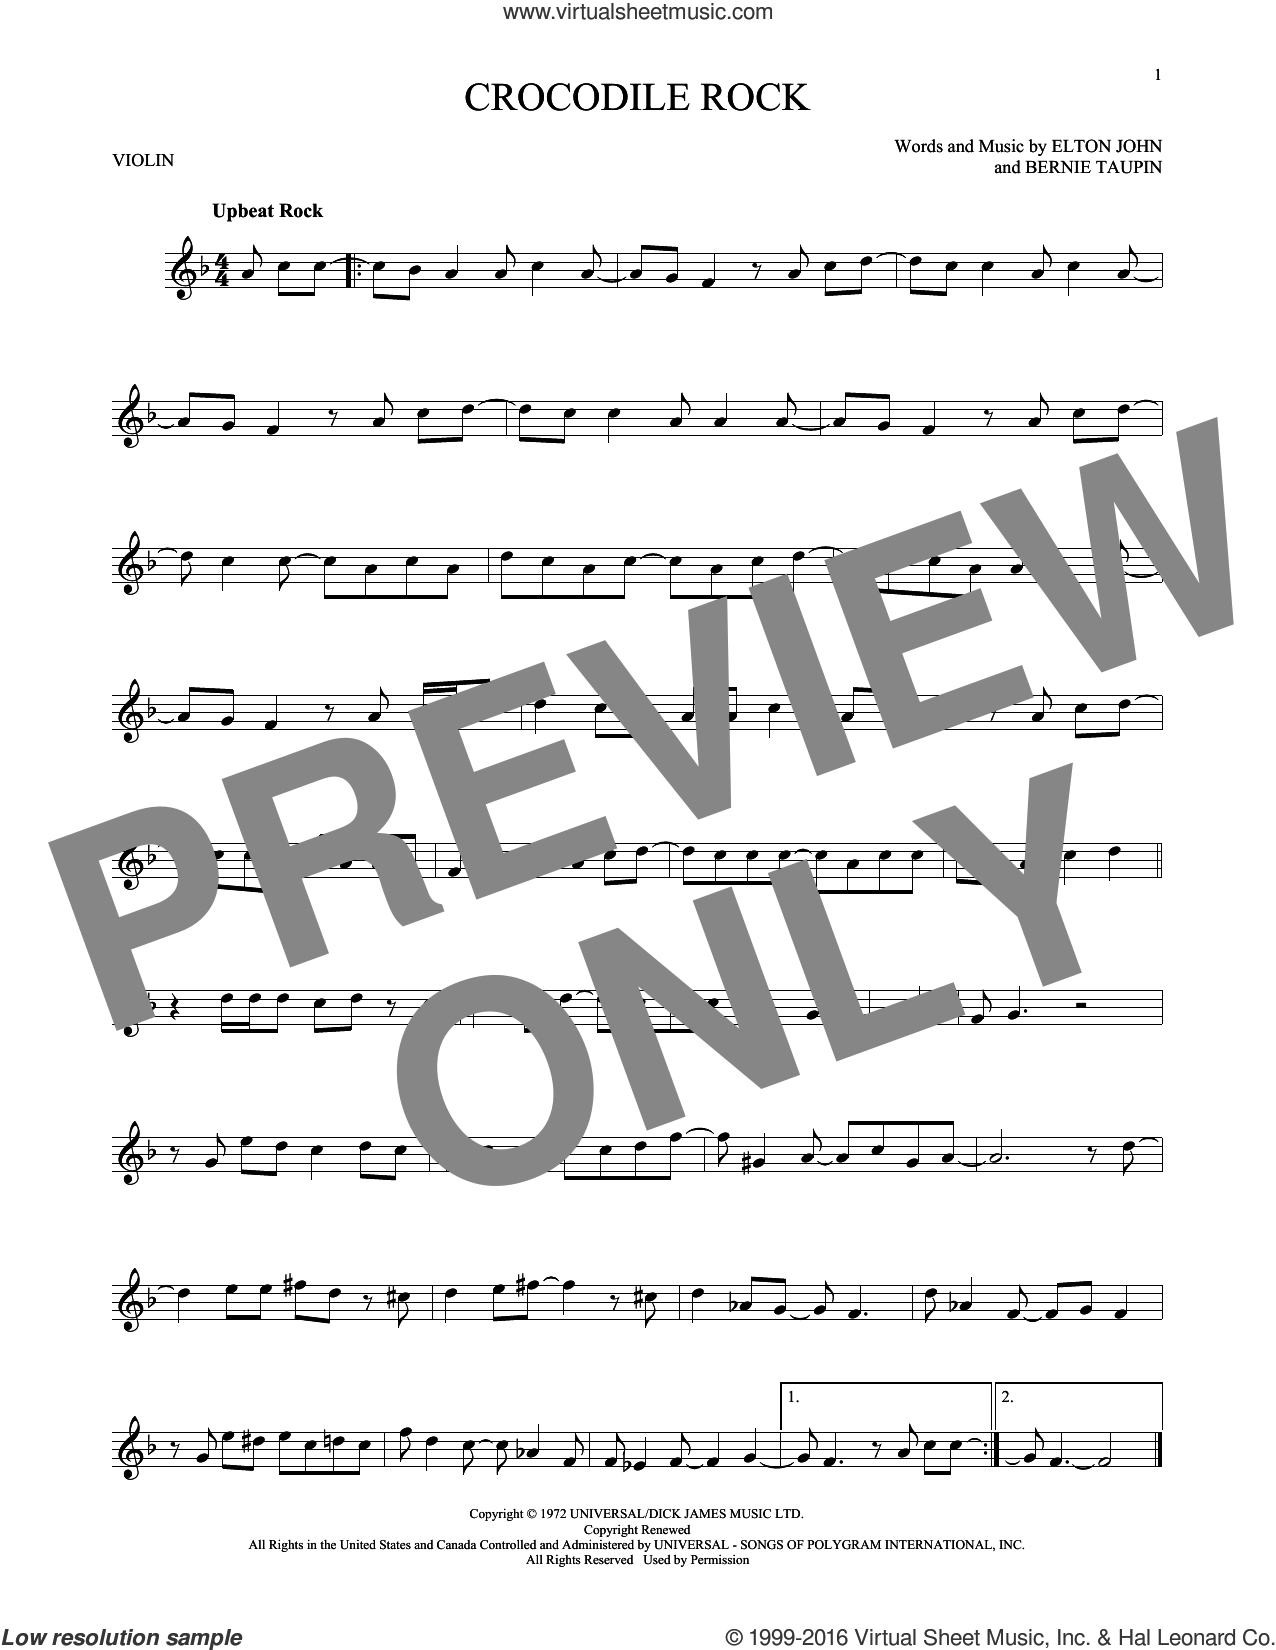 Crocodile Rock sheet music for violin solo by Elton John and Bernie Taupin. Score Image Preview.